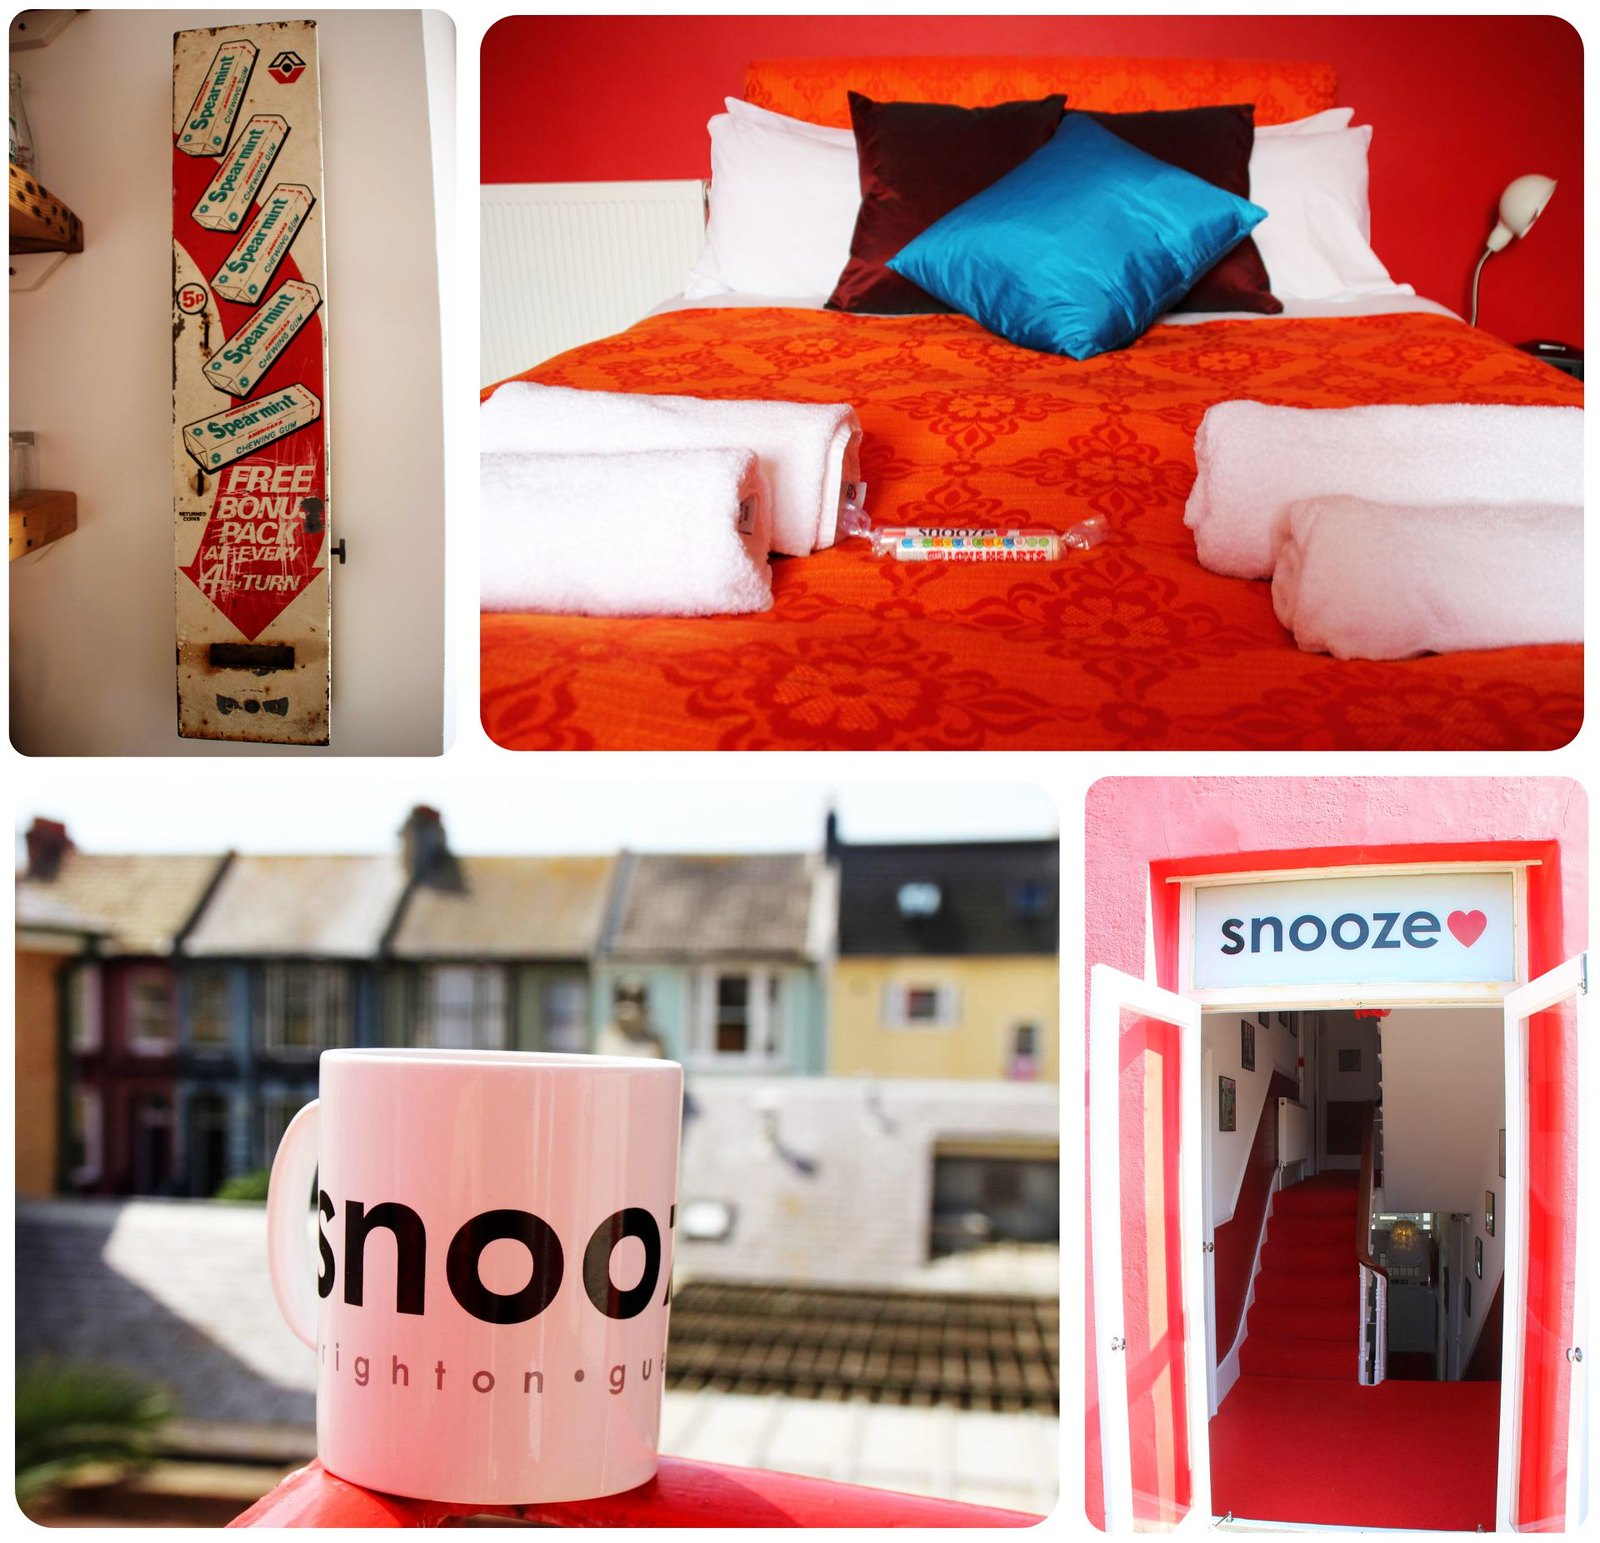 Brighton Snooze Bed & Breakfast England